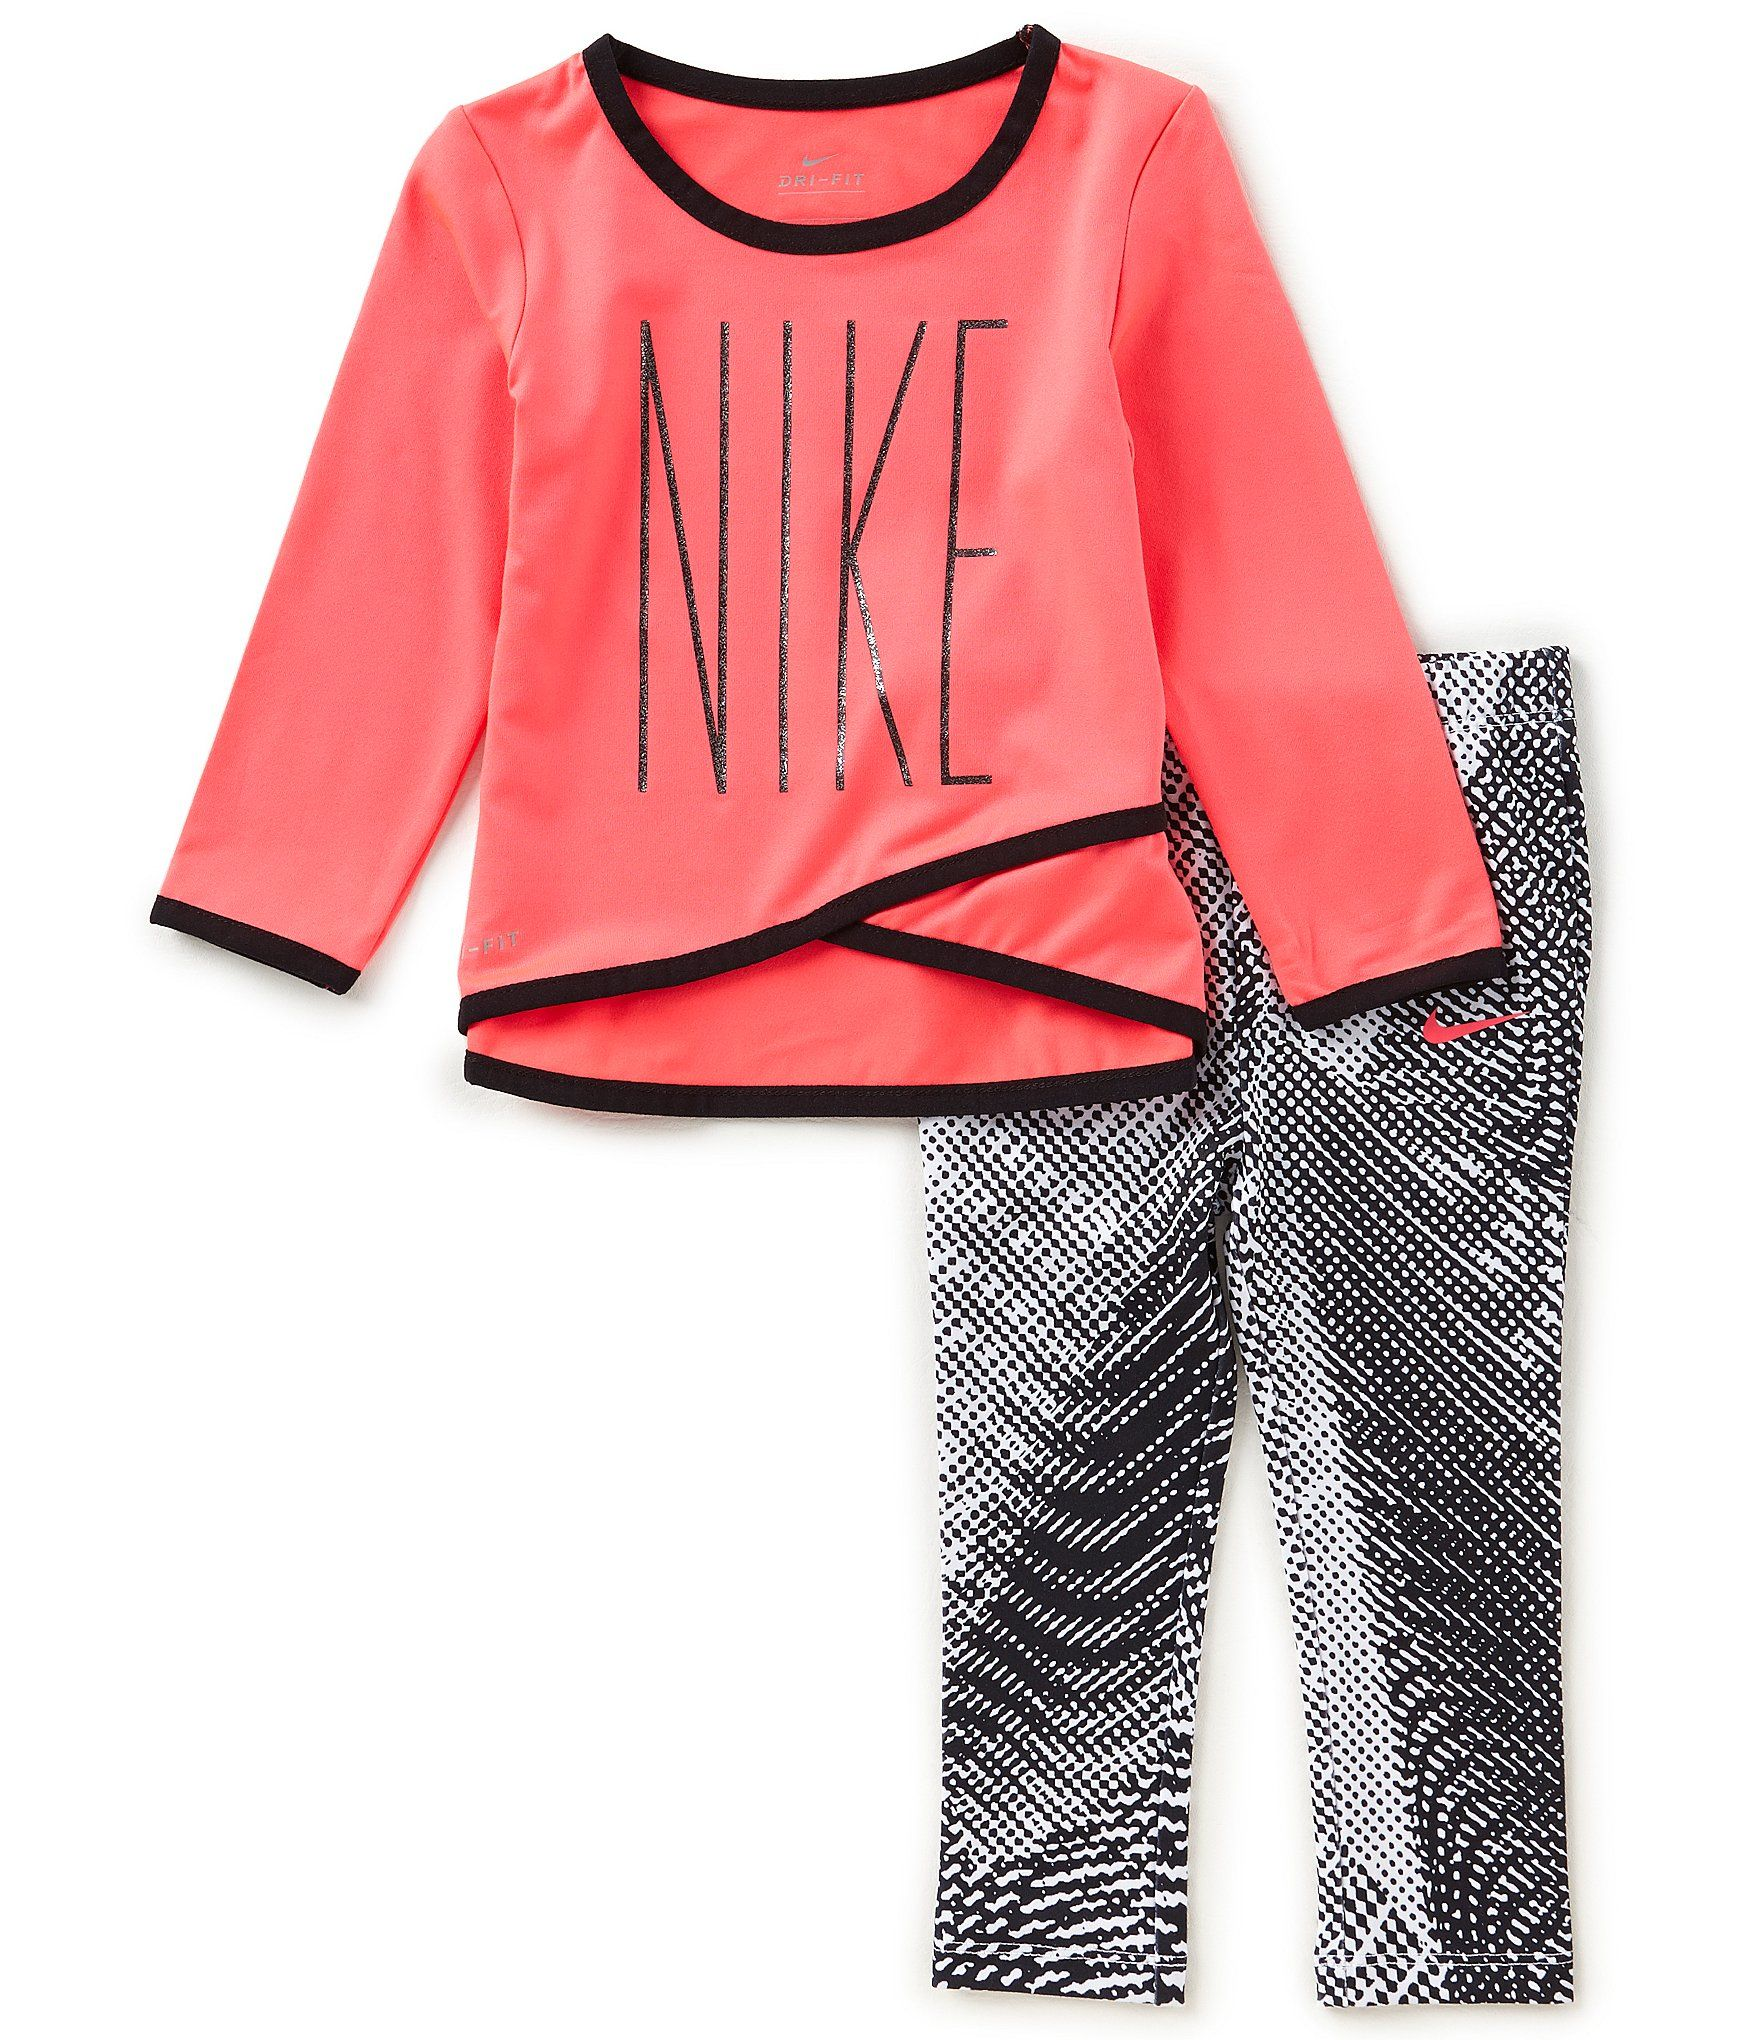 cce5b00dbb Shop for Nike Baby Girls 12-24 DriFit Sport Essentials Crossover Tunic &  Printed Legging Set at Dillards.com. Visit Dillards.com to find clothing,  ...